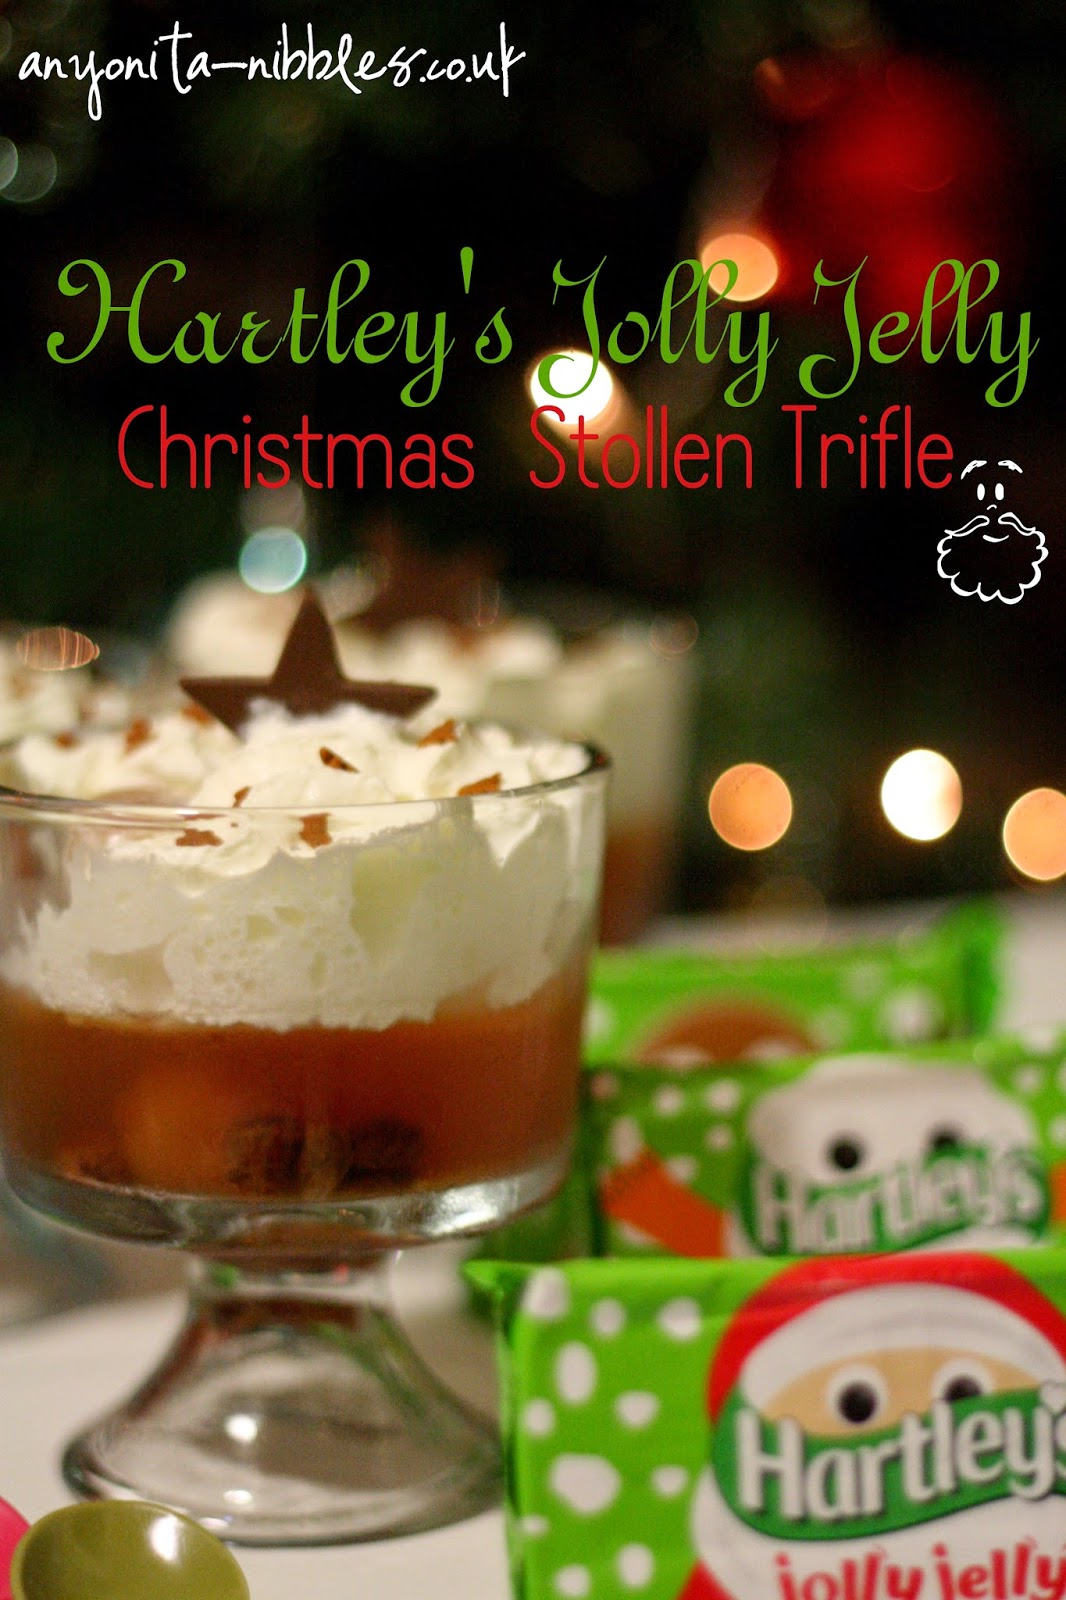 Hartley's Jolly Jelly Christmas Stollen Trifle from Anyonita-nibbles.co.uk